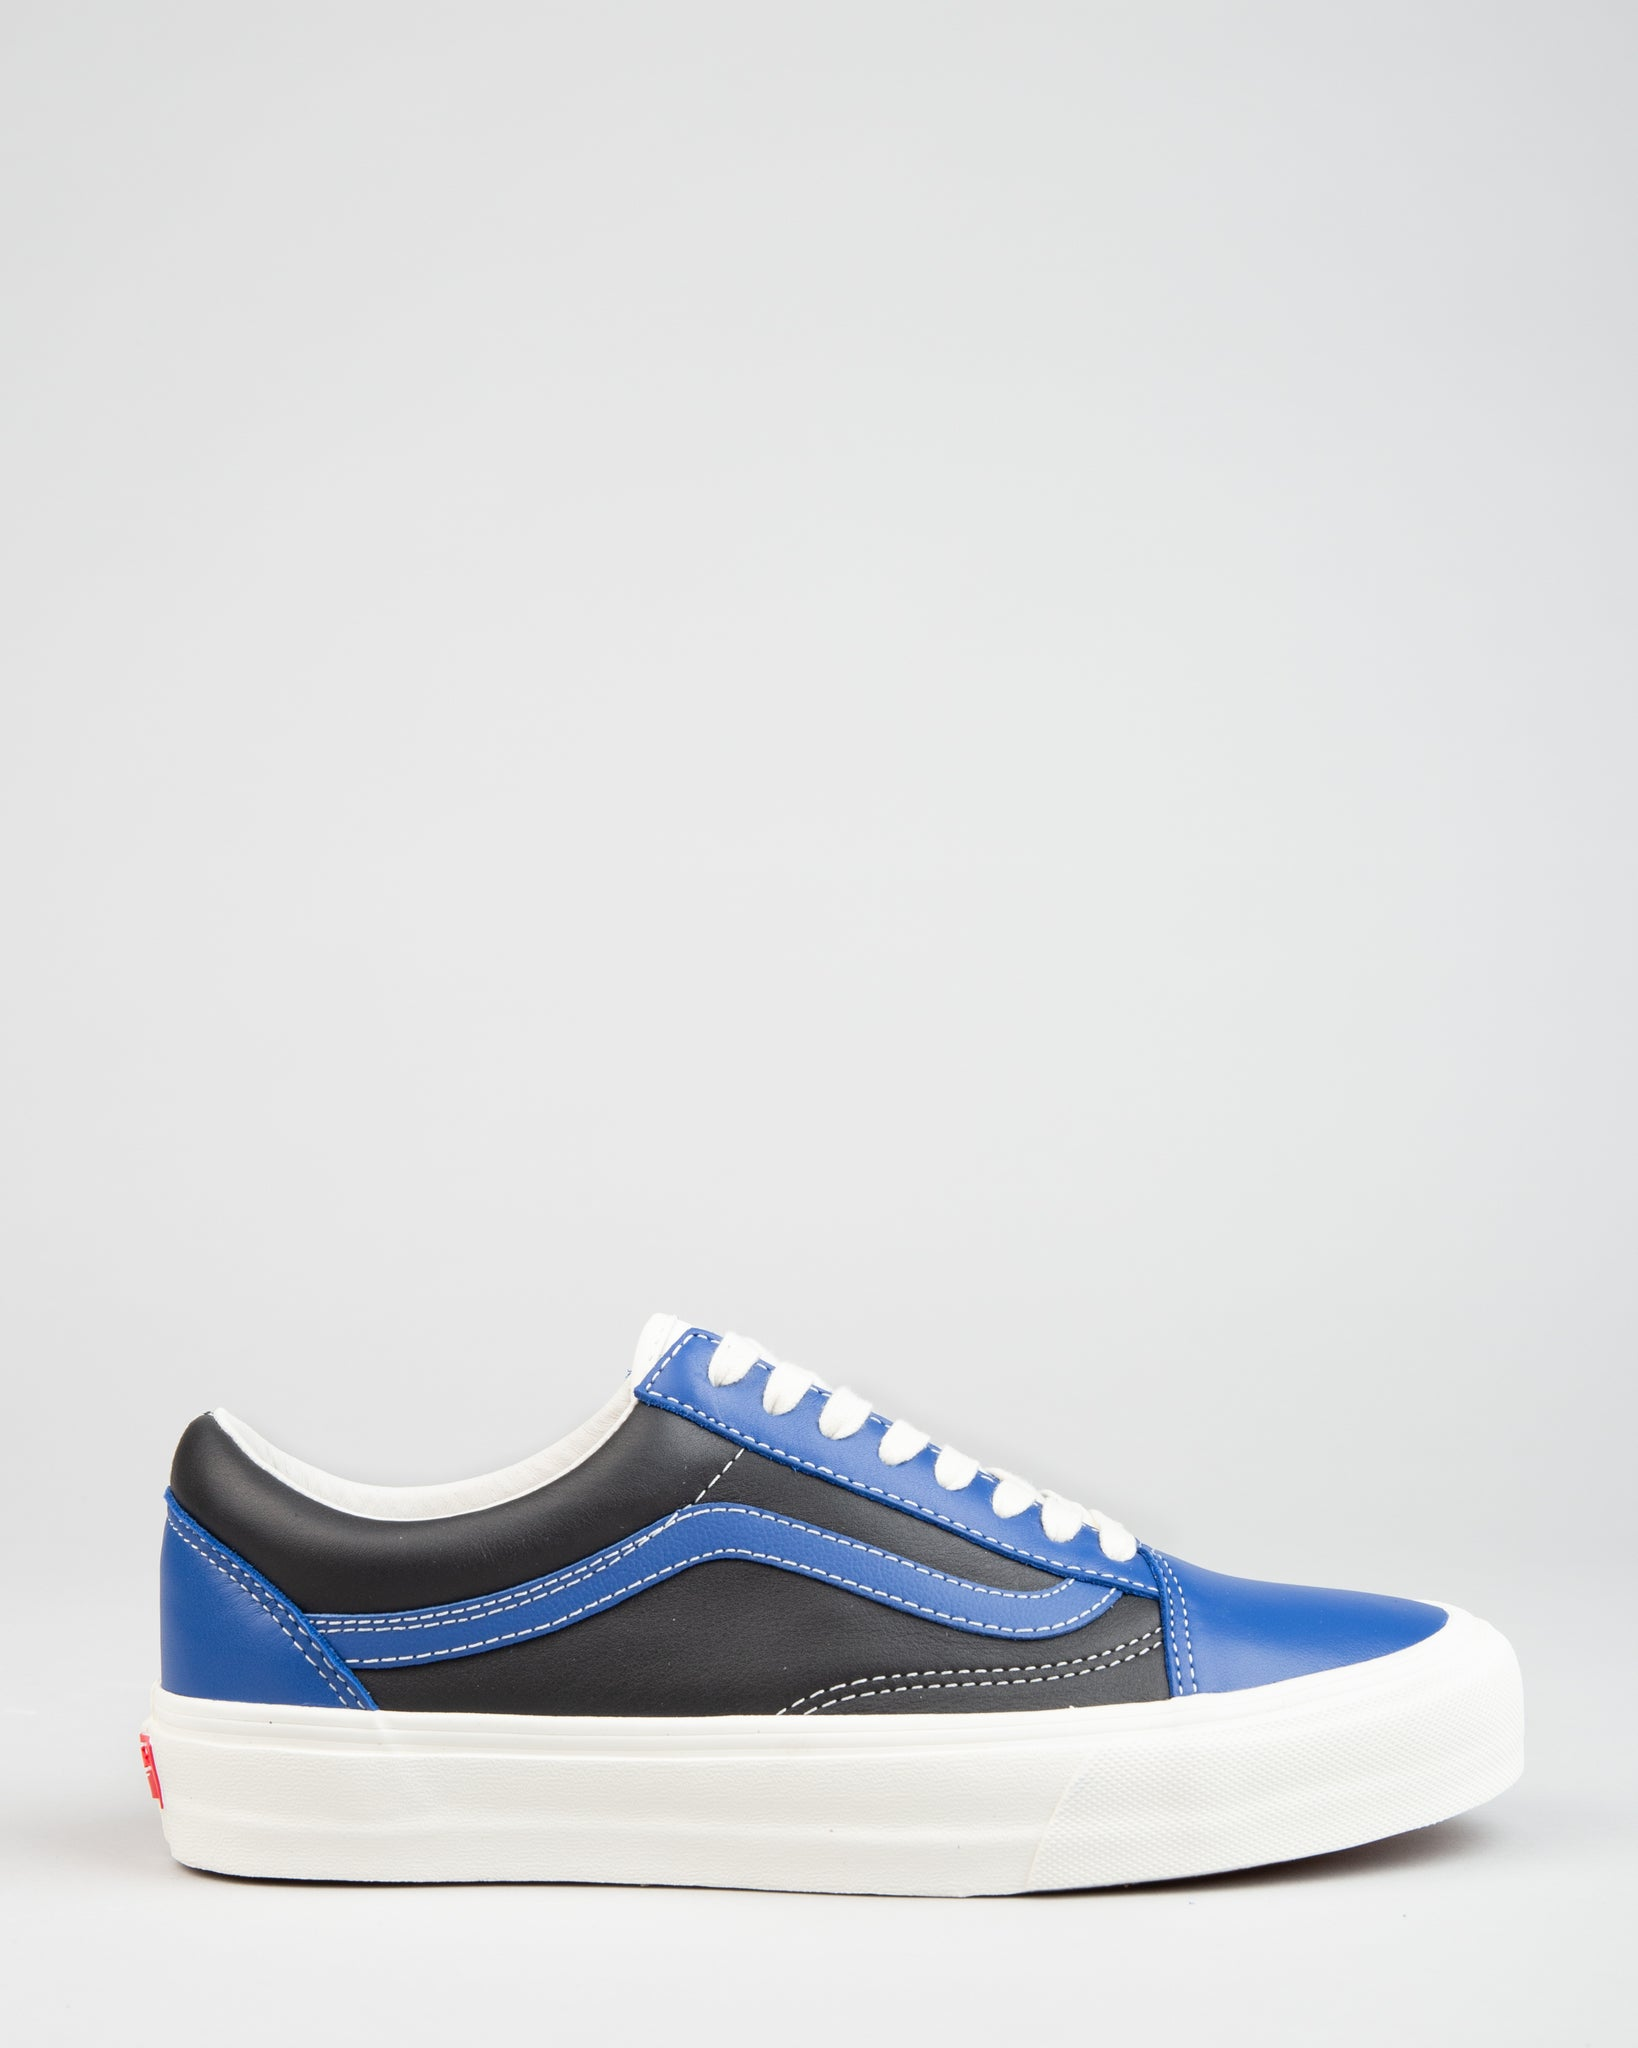 Old Skool VLT LX True Blue/Marshmallow